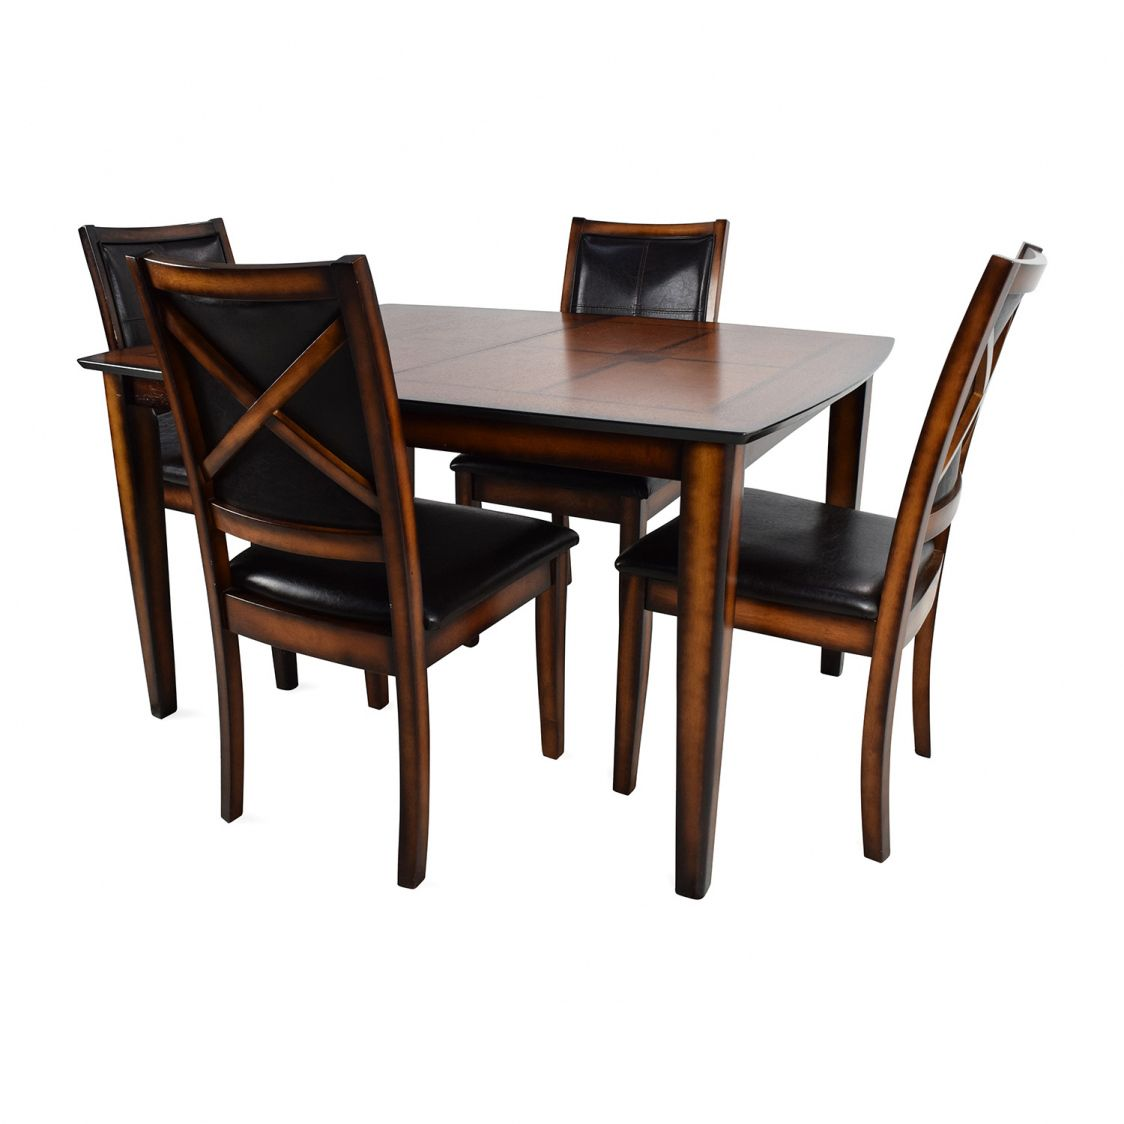 Etonnant Dining Room Chairs Denver   Cool Storage Furniture Check More At  Http://1pureedm